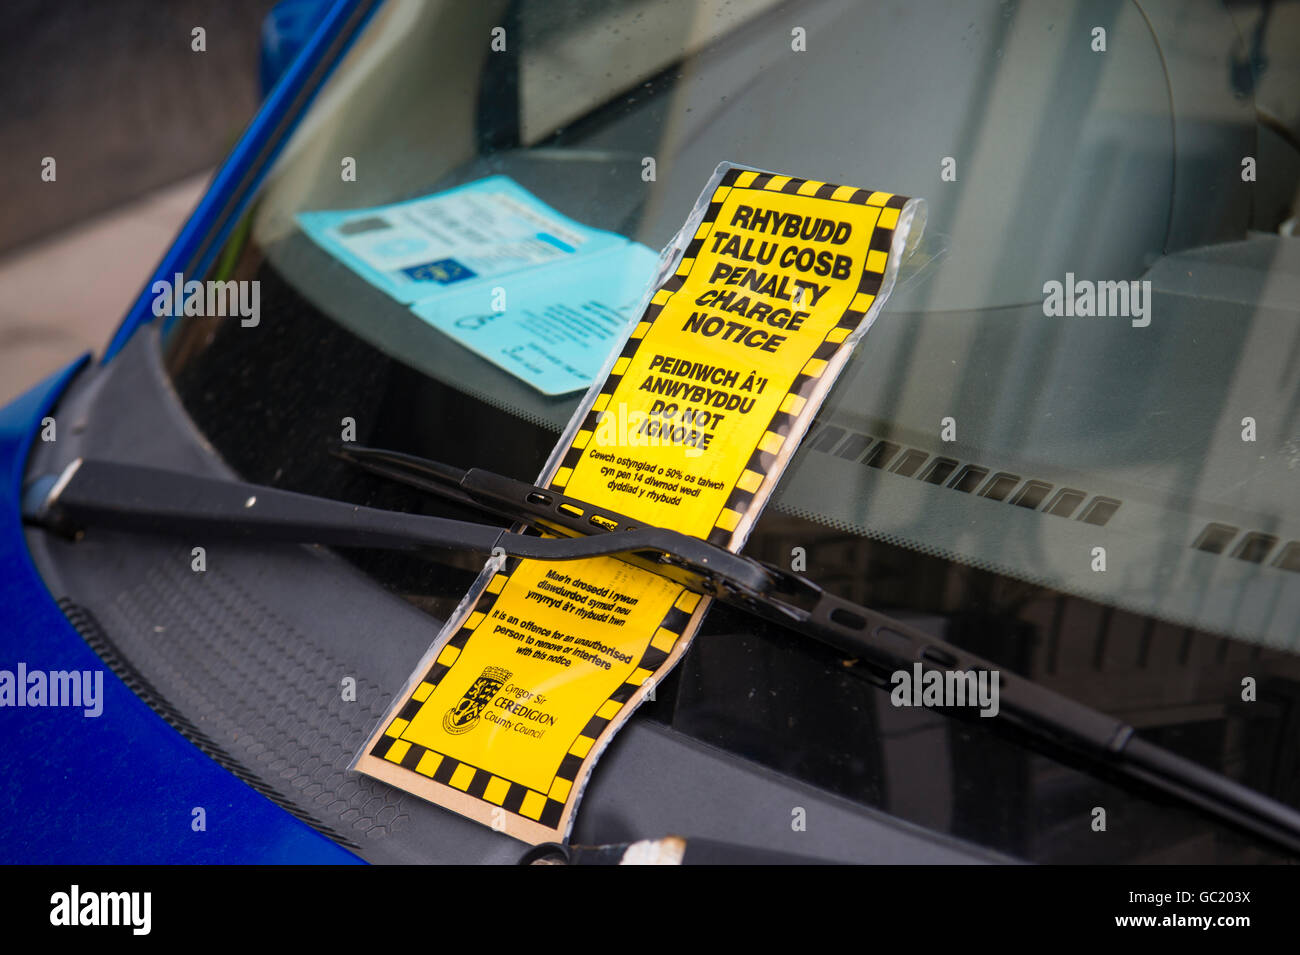 A car parking fixed penalty notice  ticket, in welsh and english language, on the windscreen of a car which also - Stock Image